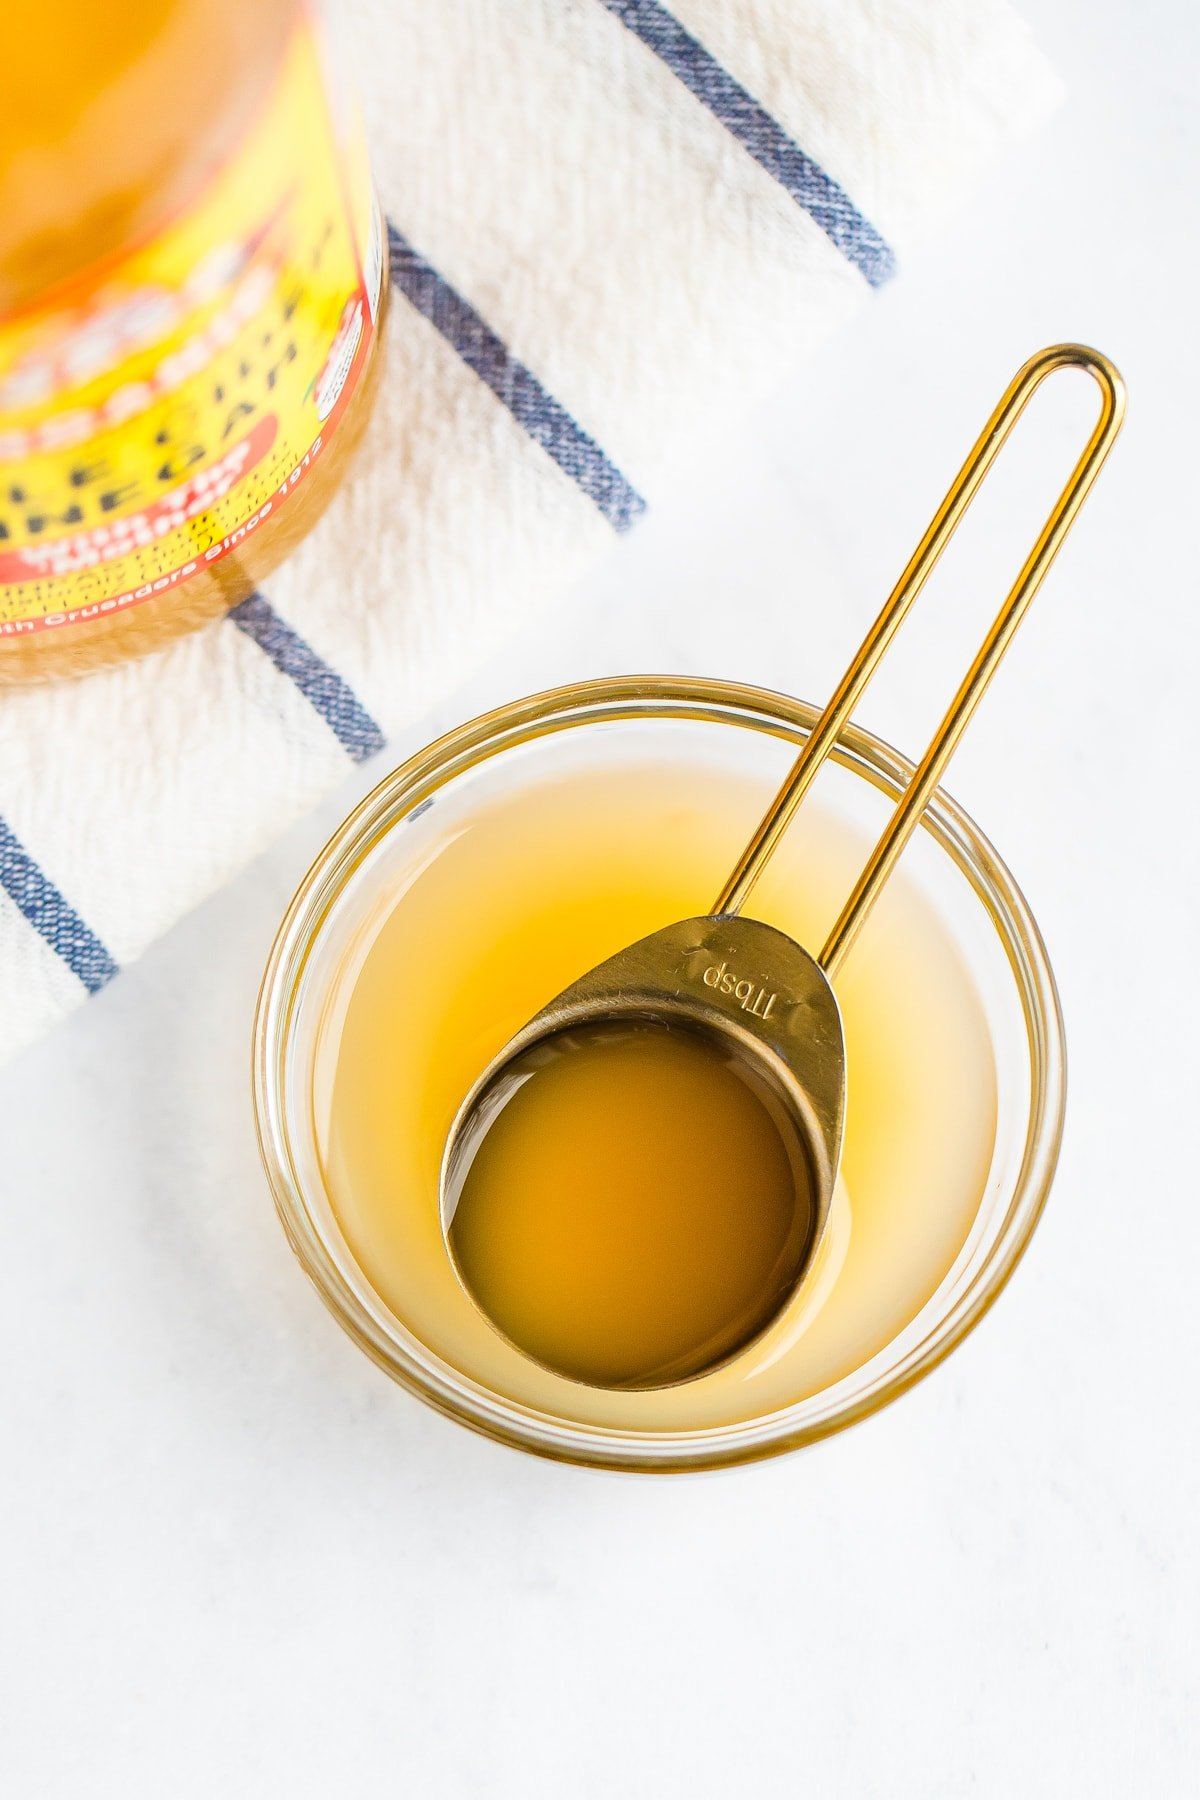 Apple cider vinegar in a small glass bowl with gold tablespoon.